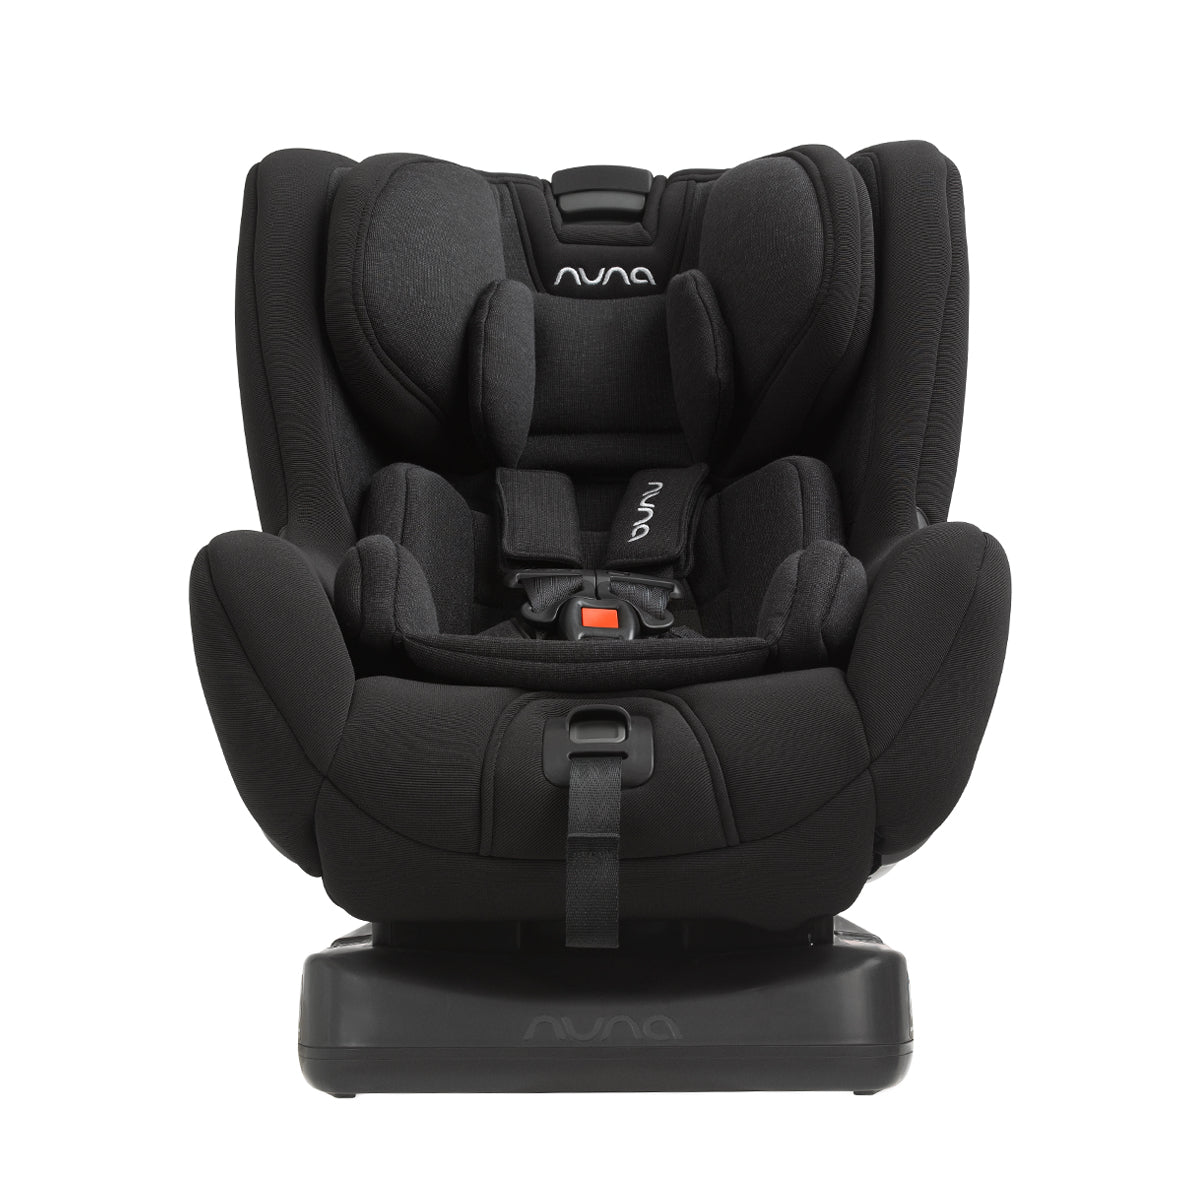 NUNA RAVA CAR SEAT - Strollers and More